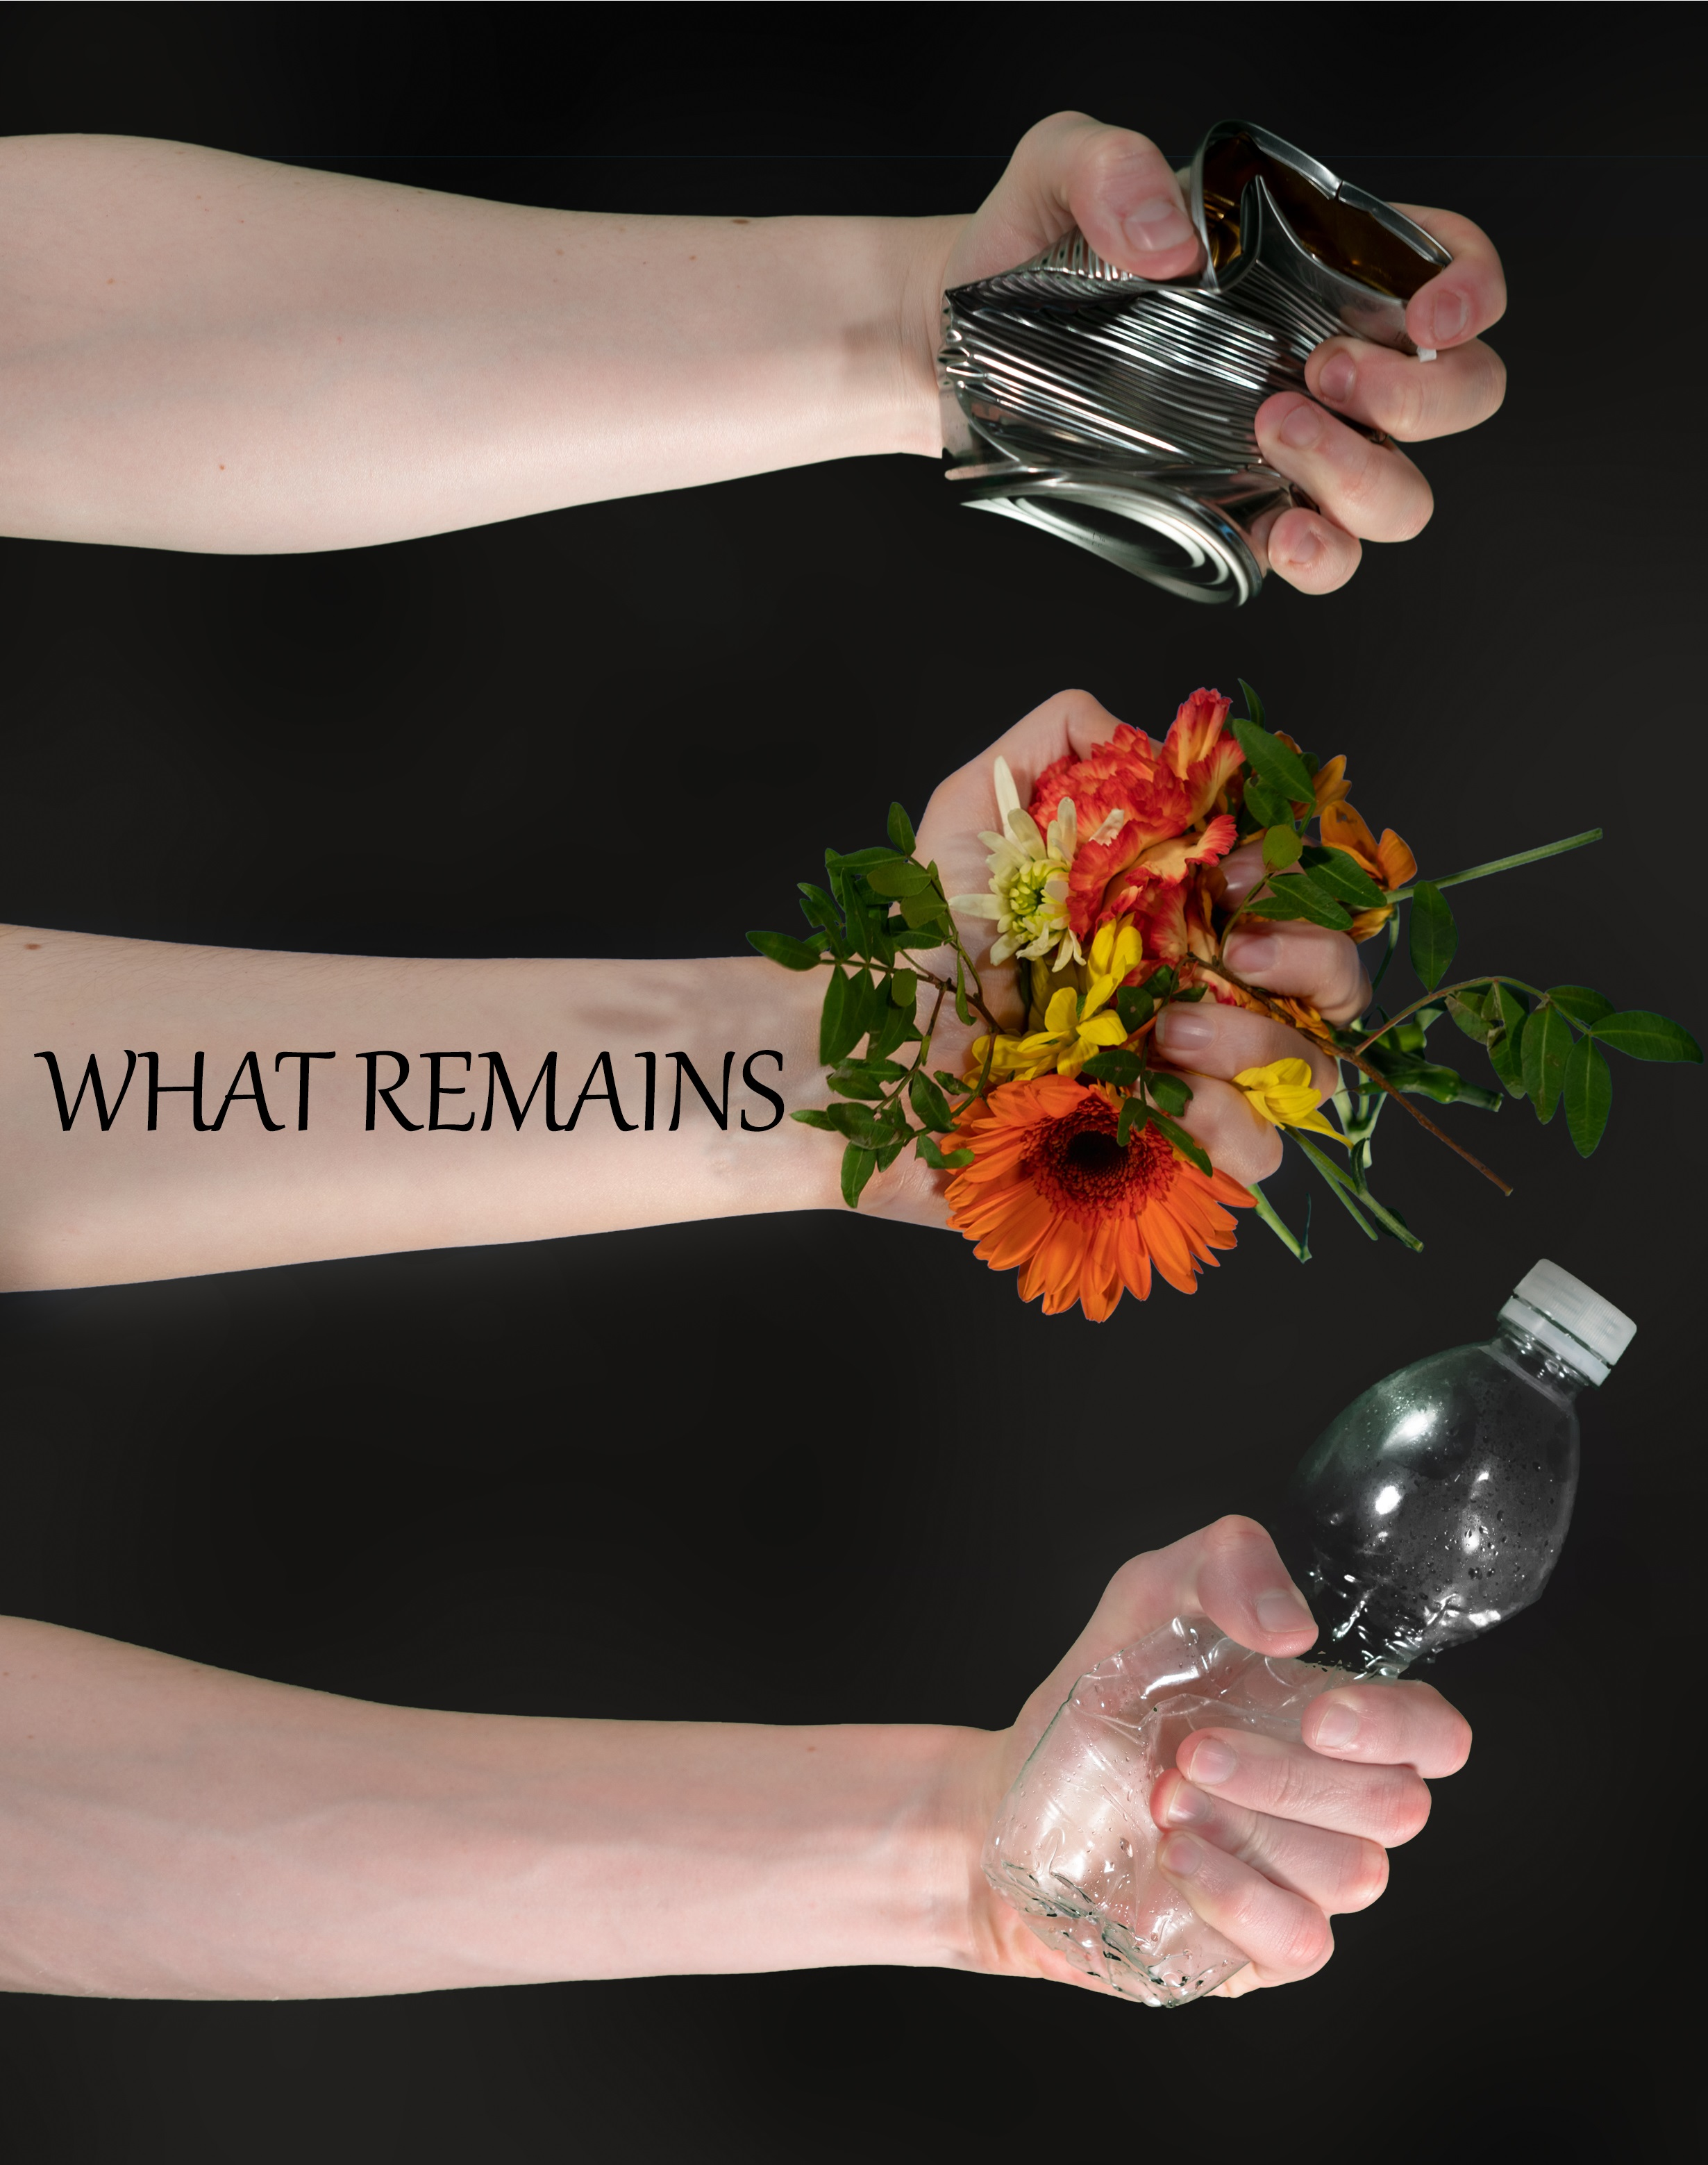 MANIACAL VISION PRODUCTIONS - WHAT REMAINS